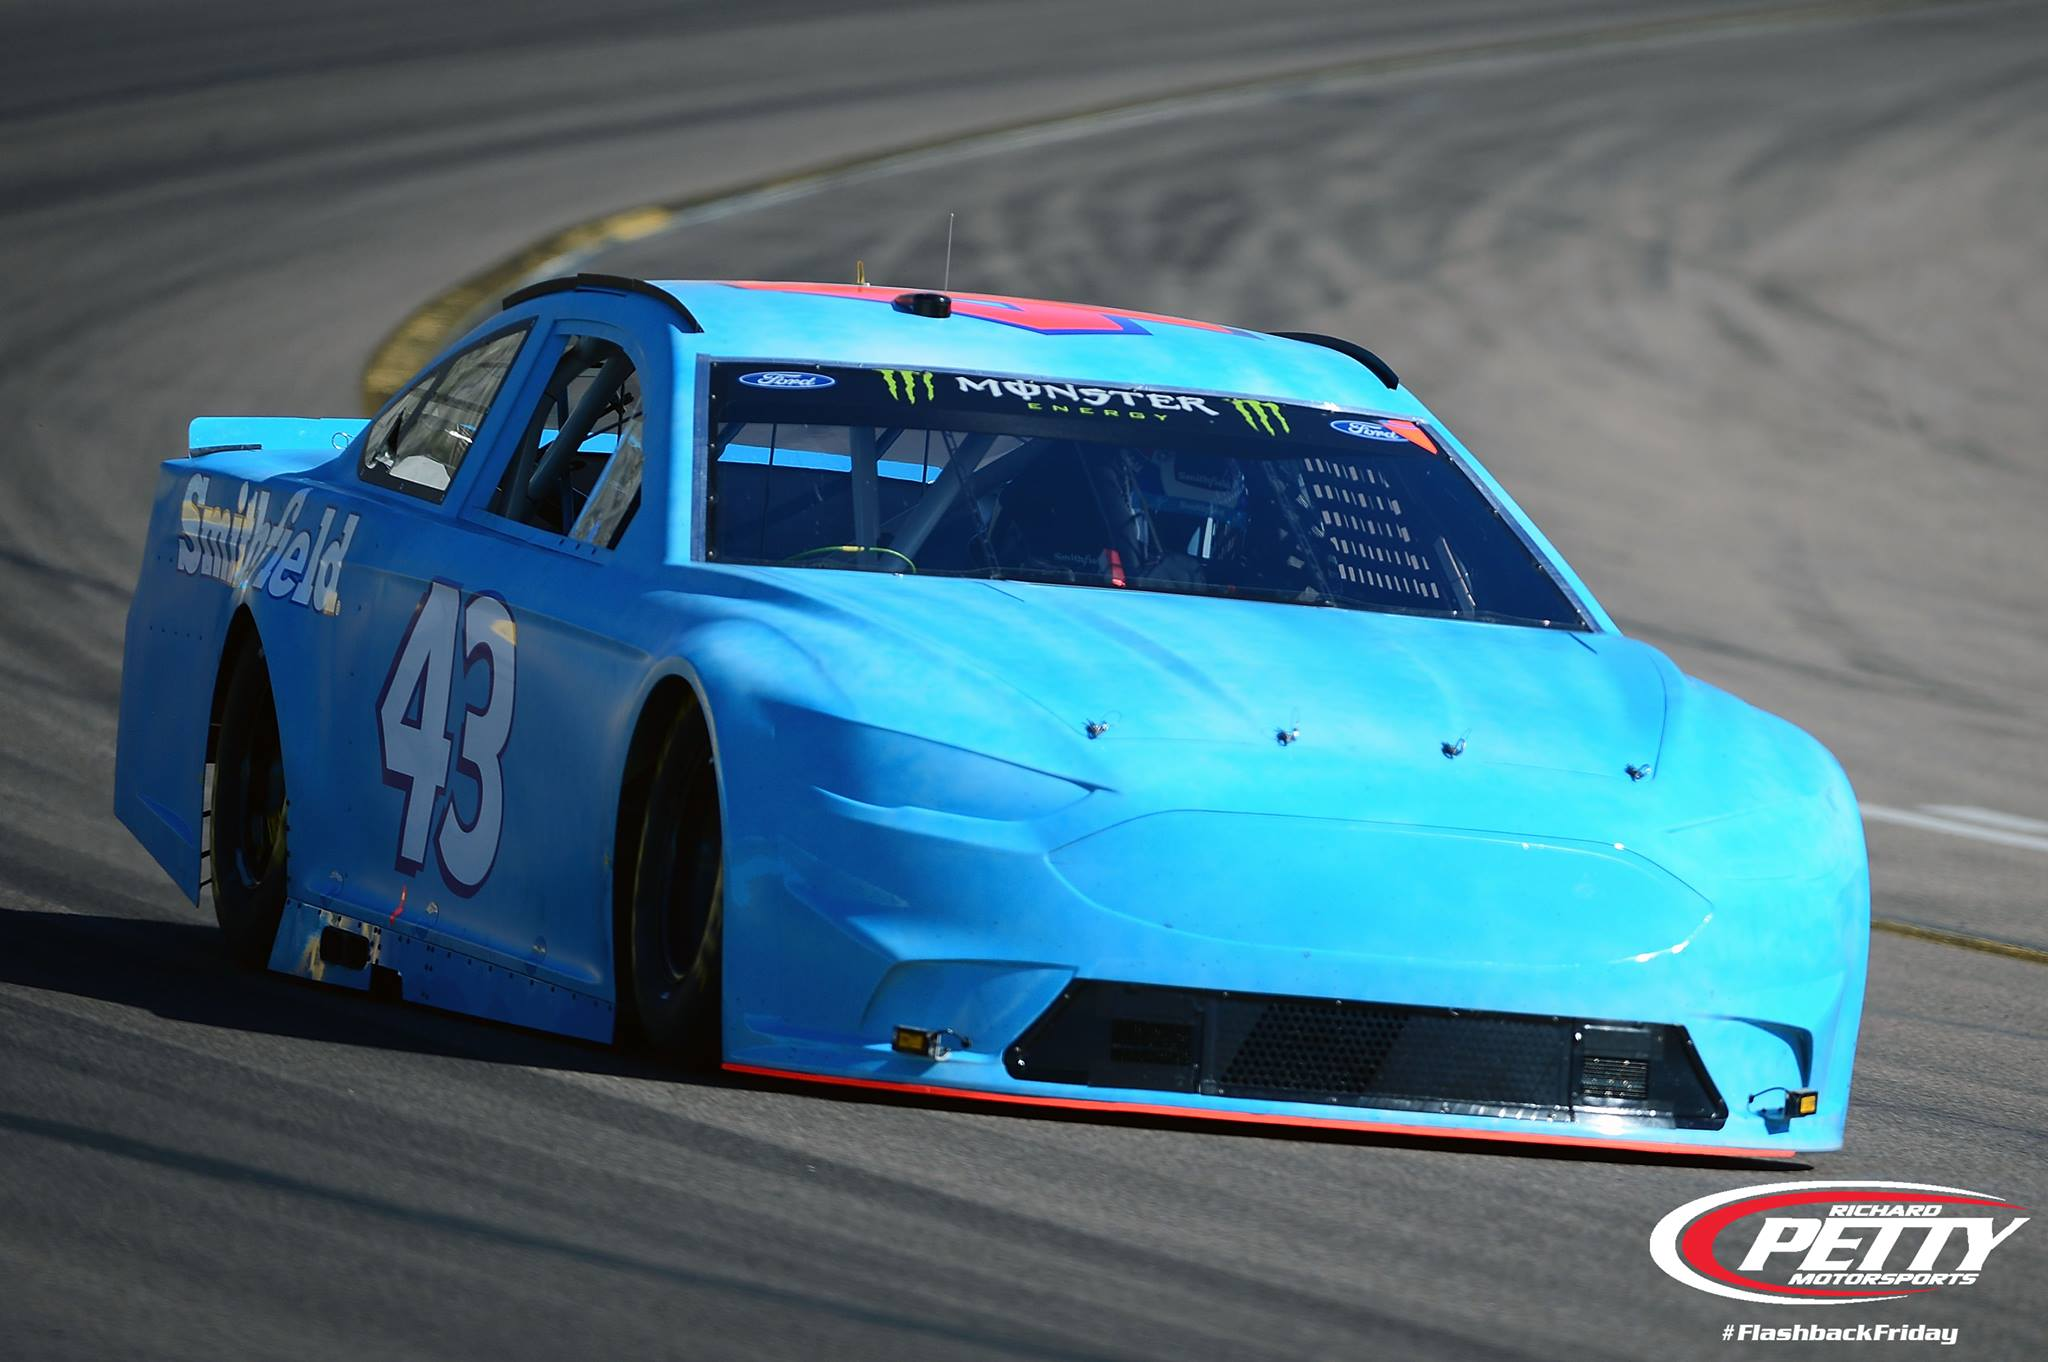 Aric Almirola Replacement Driver at Richard Petty Motorsports